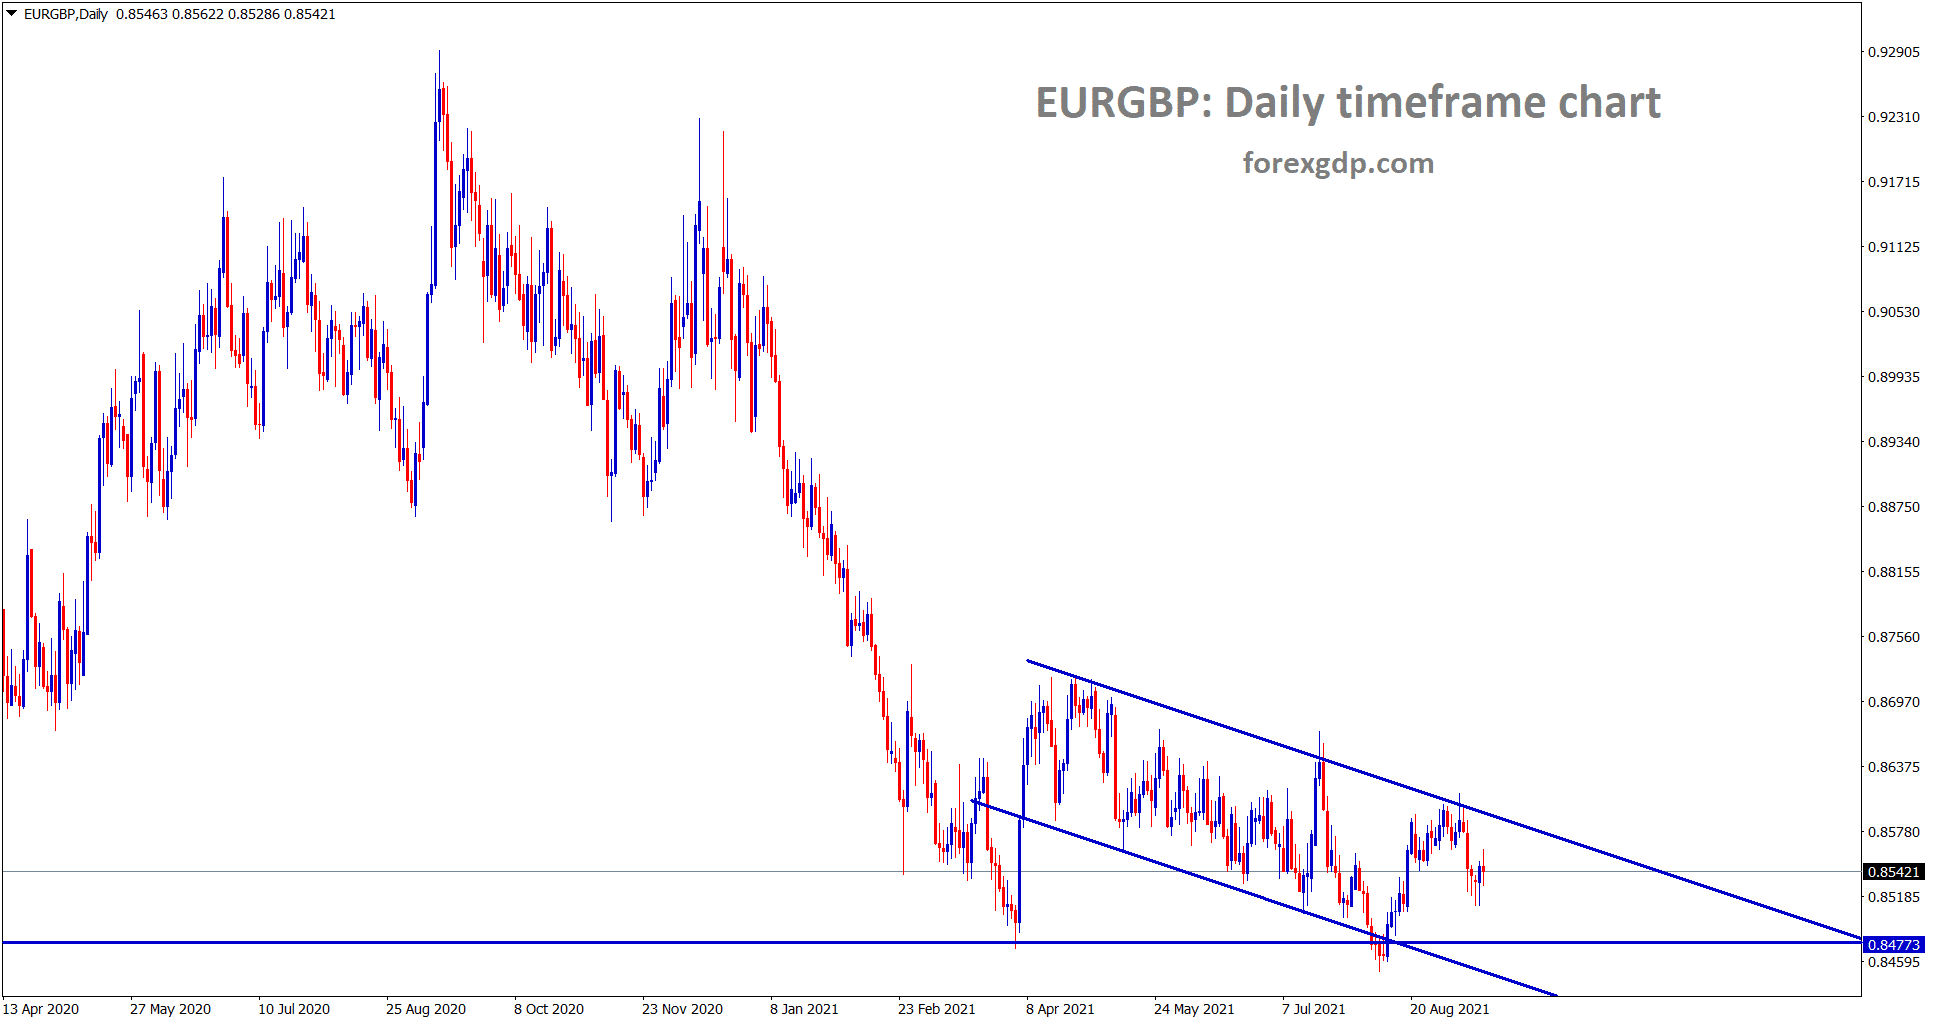 EURGBP is moving between the channel range